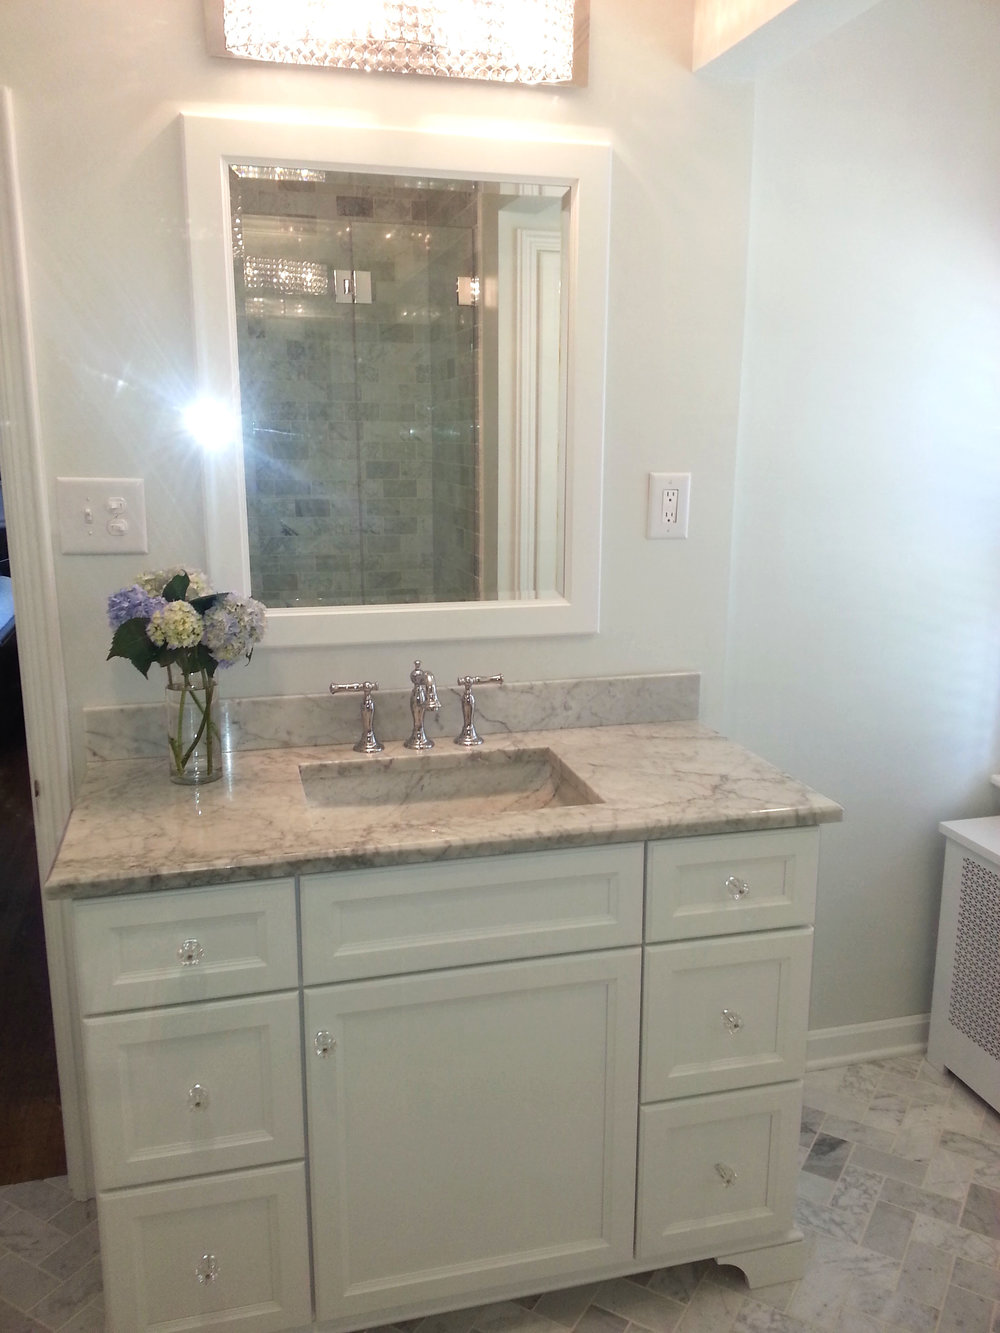 Hutch carrara bathroom 2.jpg